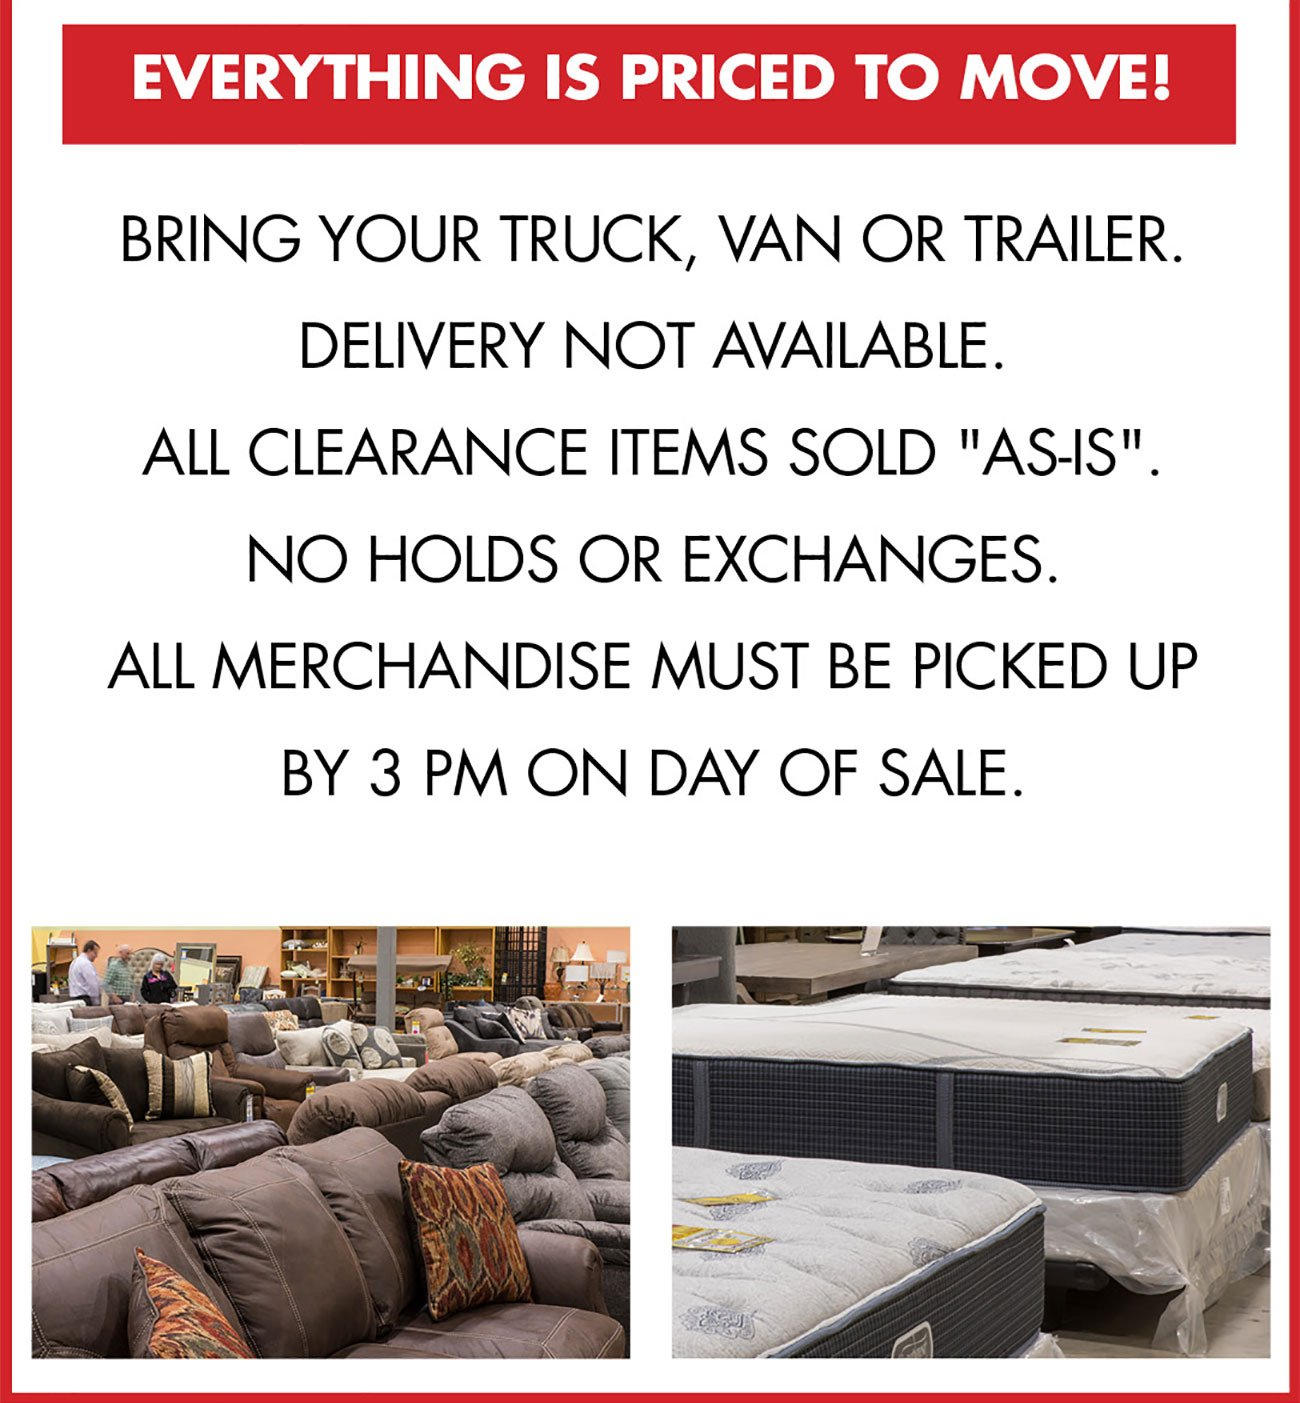 Everything-is-priced-to-move